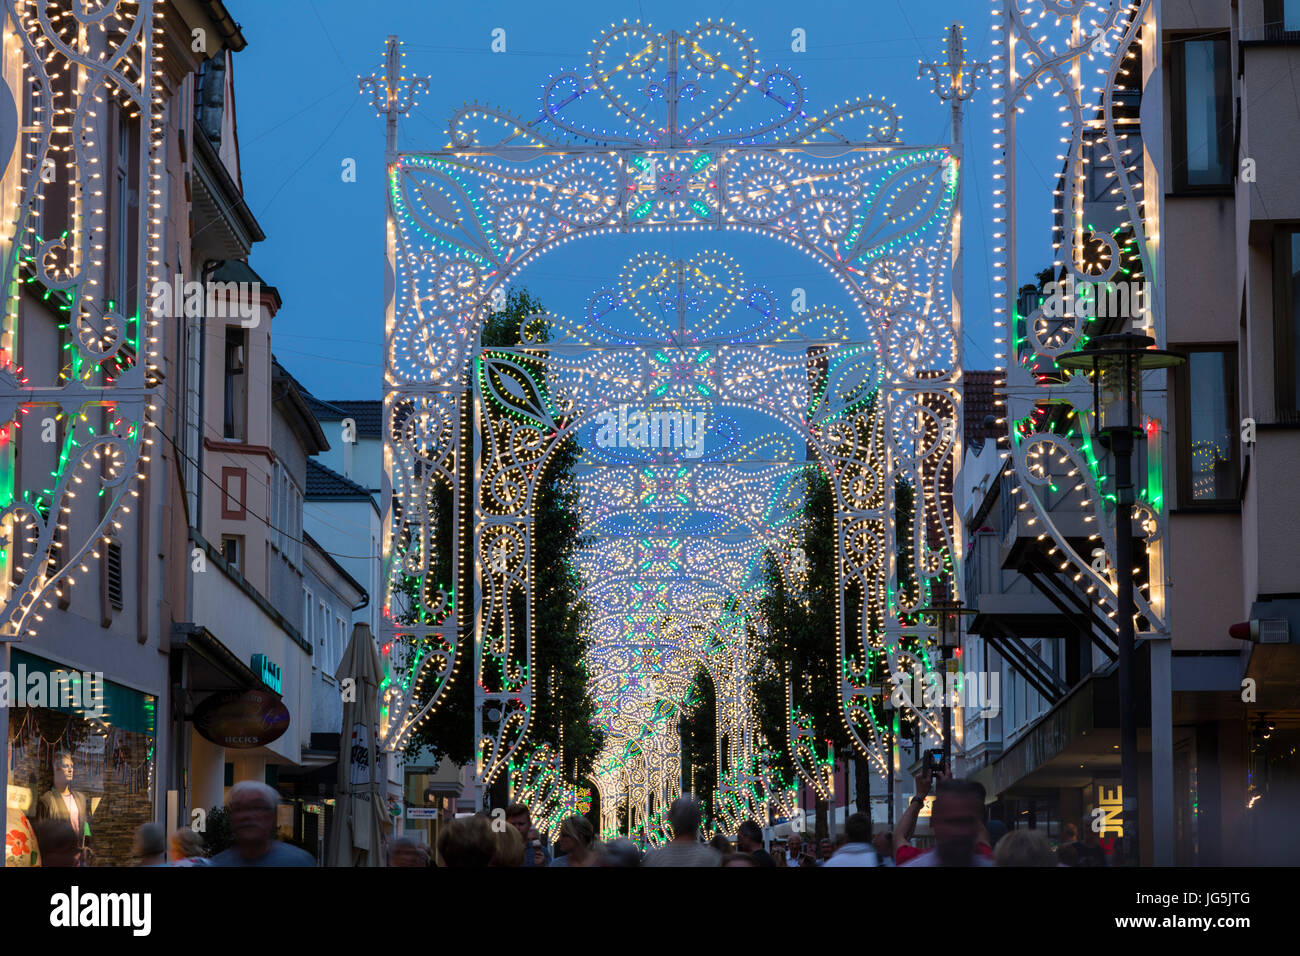 Light arcs in the pedestrian zone, Italian festivity Festa Italiana, Unna, Ruhr area, North Rhine-Westphalia, Germany - Stock Image